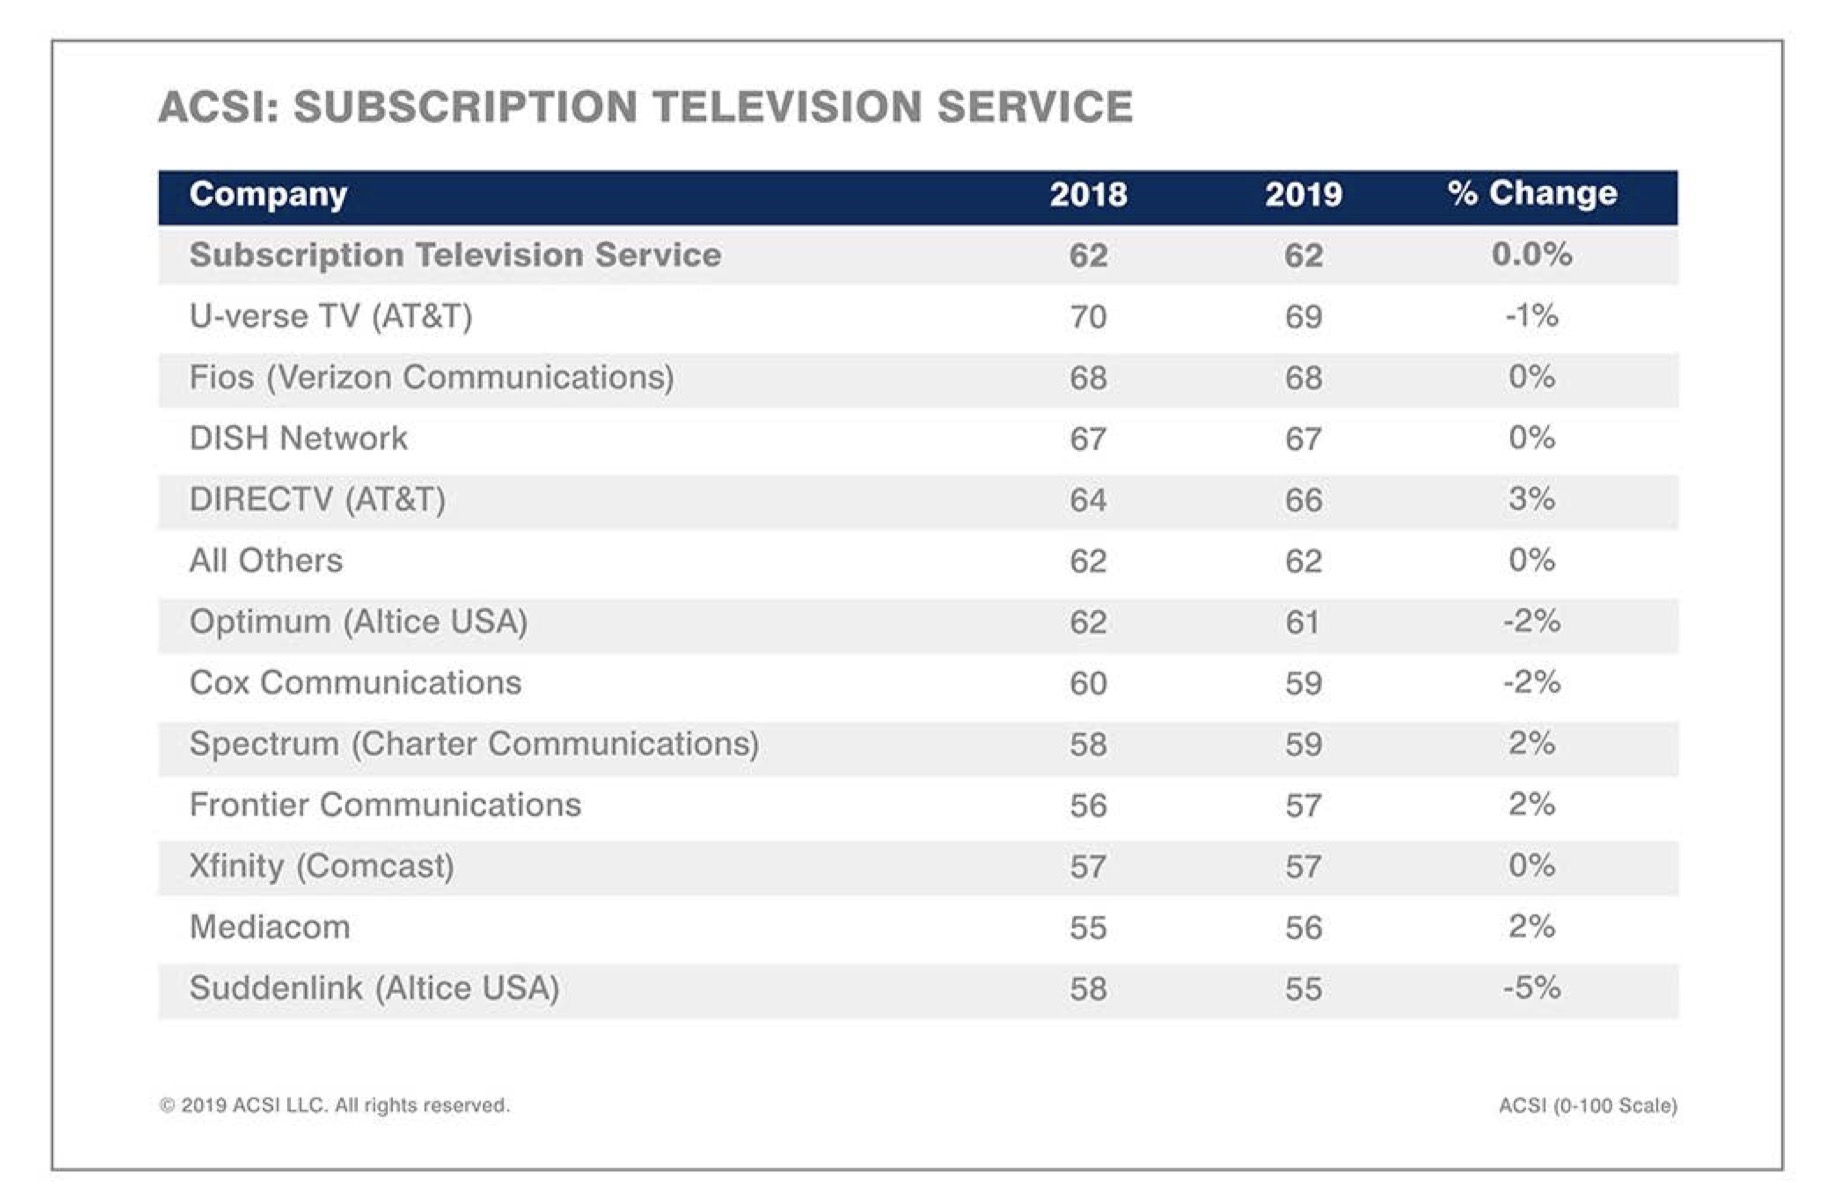 The ACSI's subscription-television service ranking for 2019.